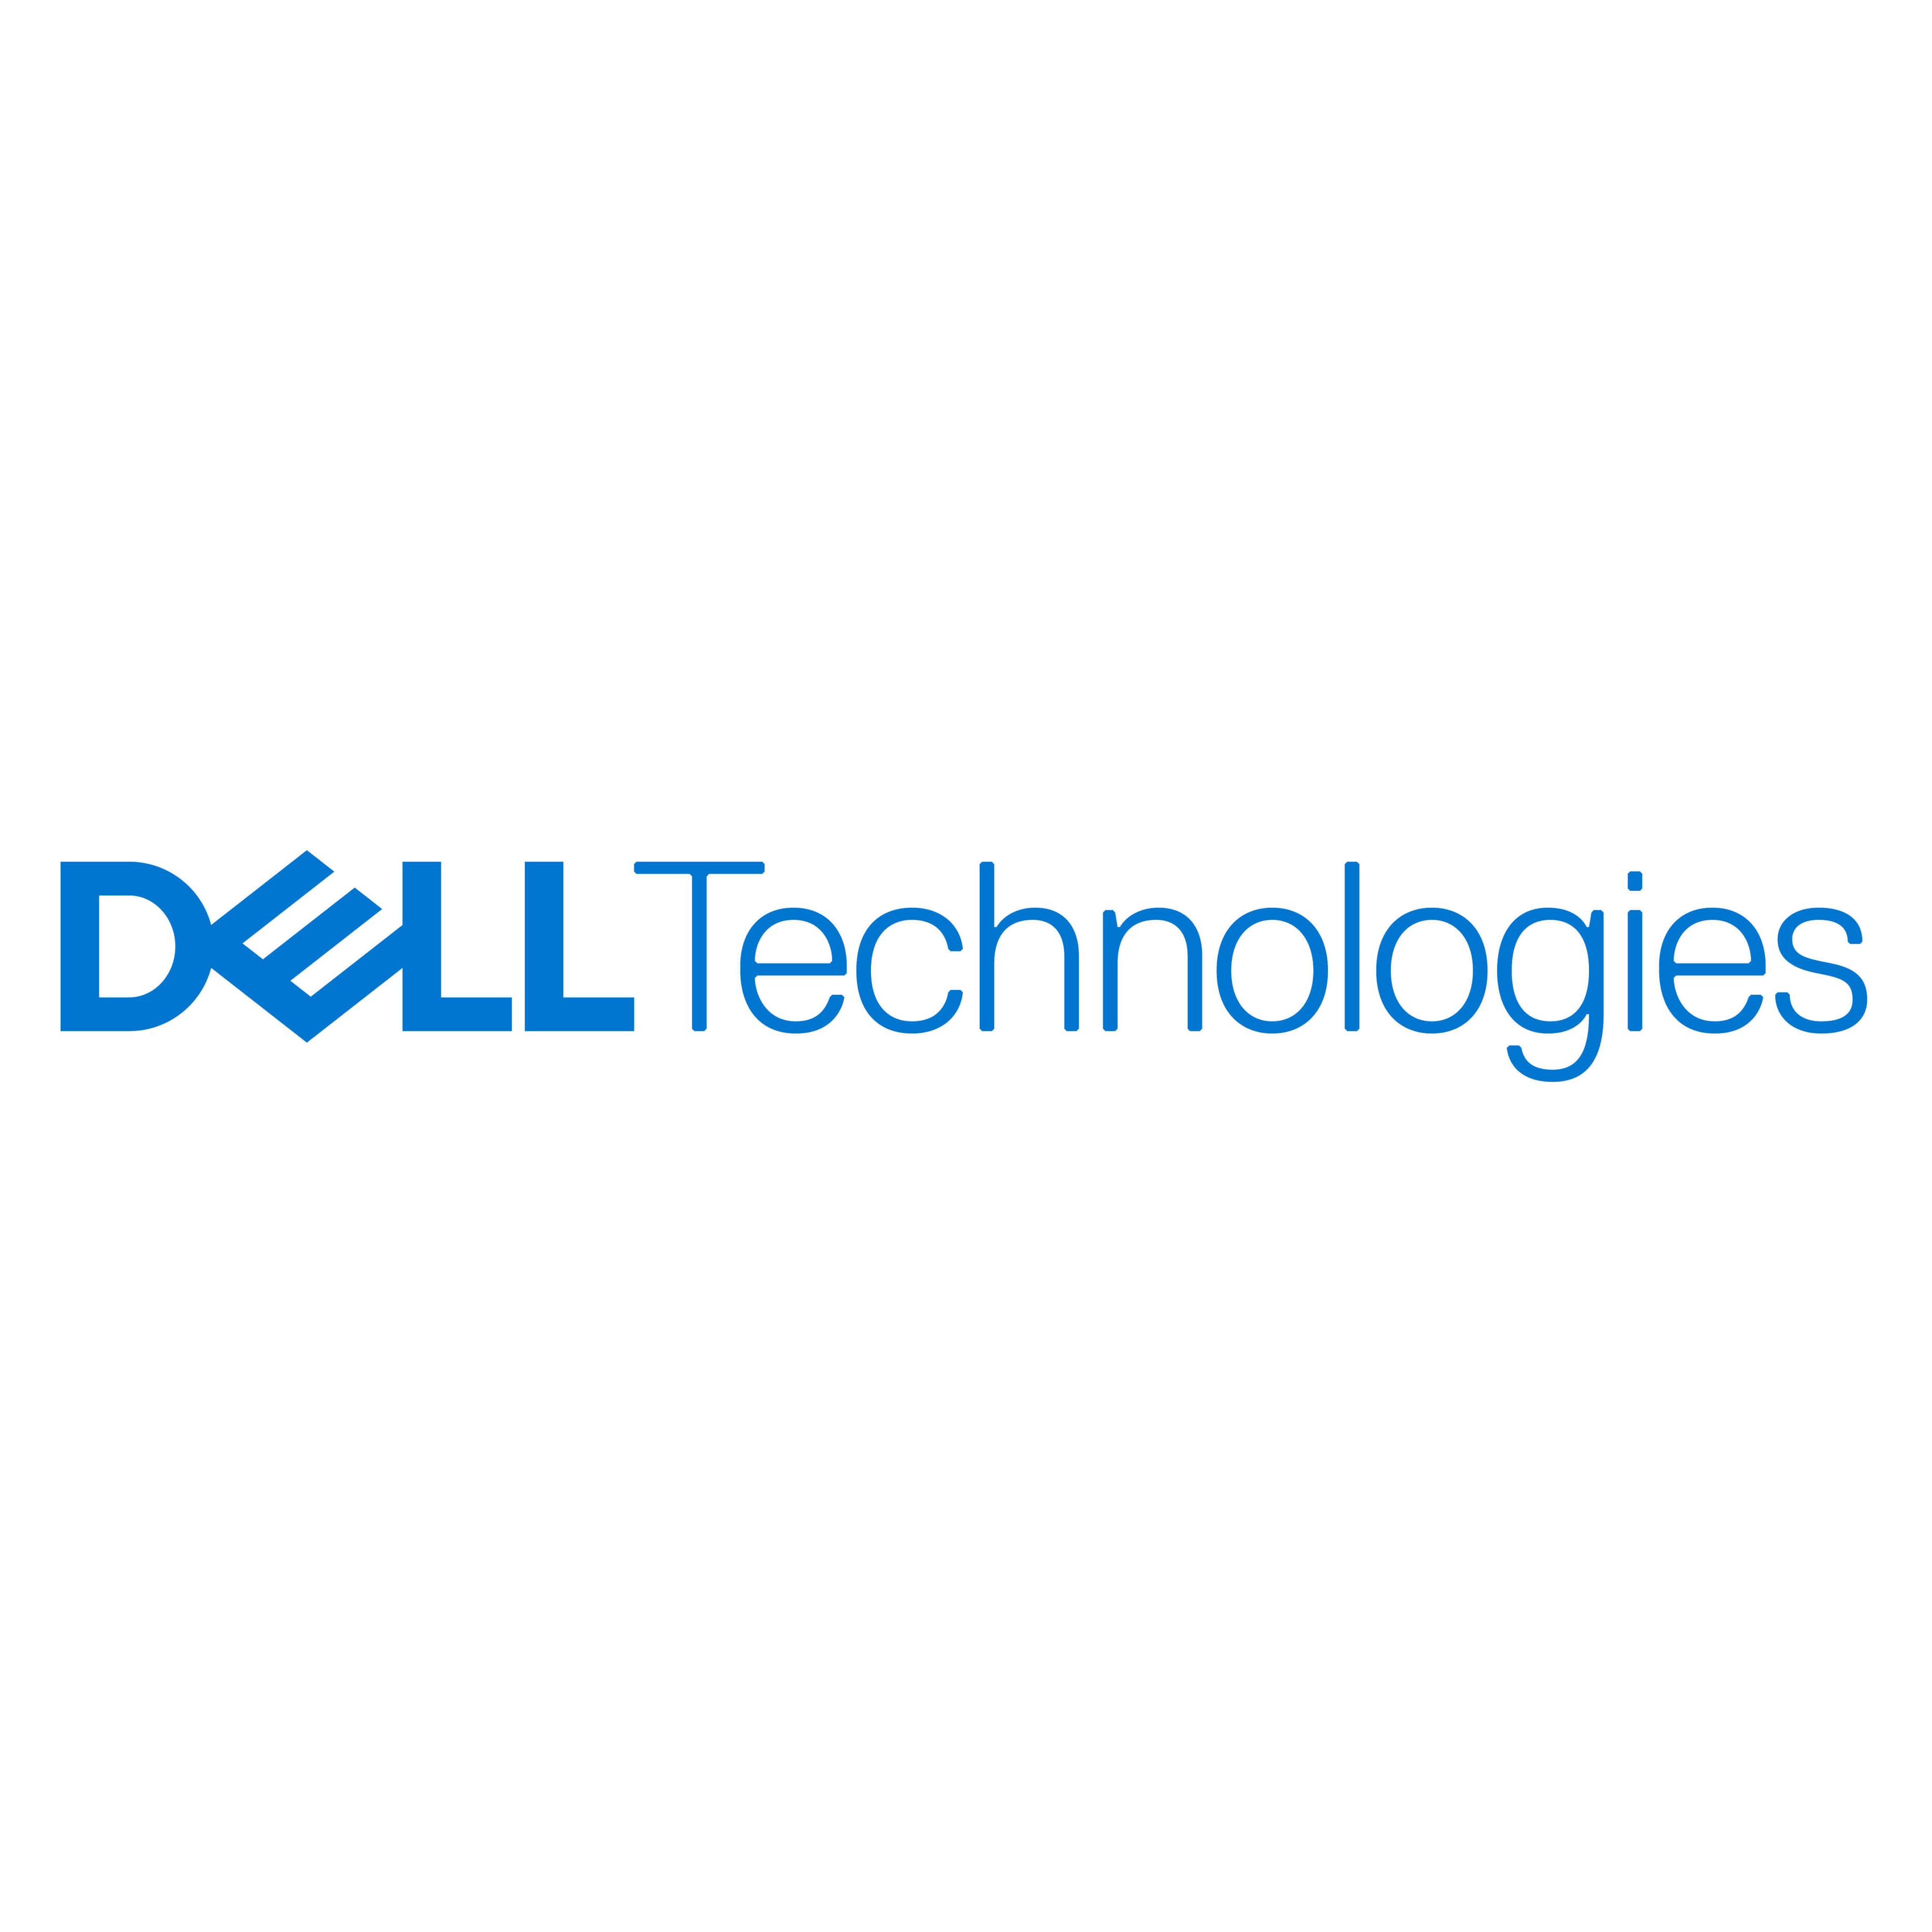 DELL_Technology_square